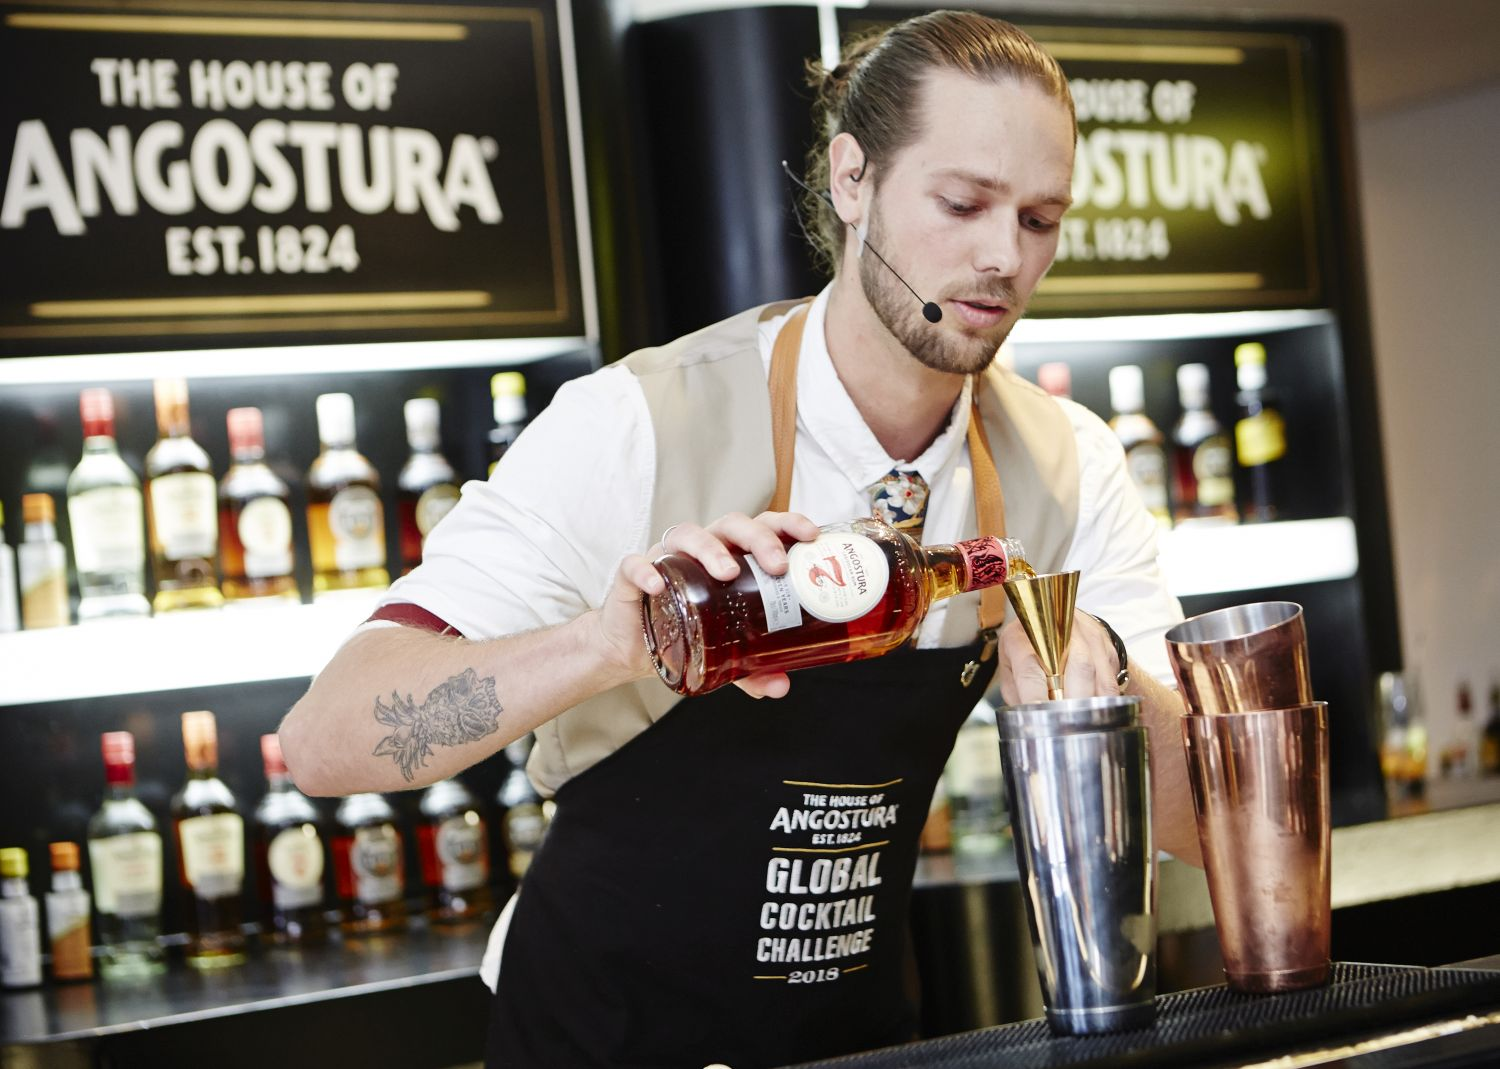 The House of Angostura launches the 10th edition of its Global Cocktail Challenge photo